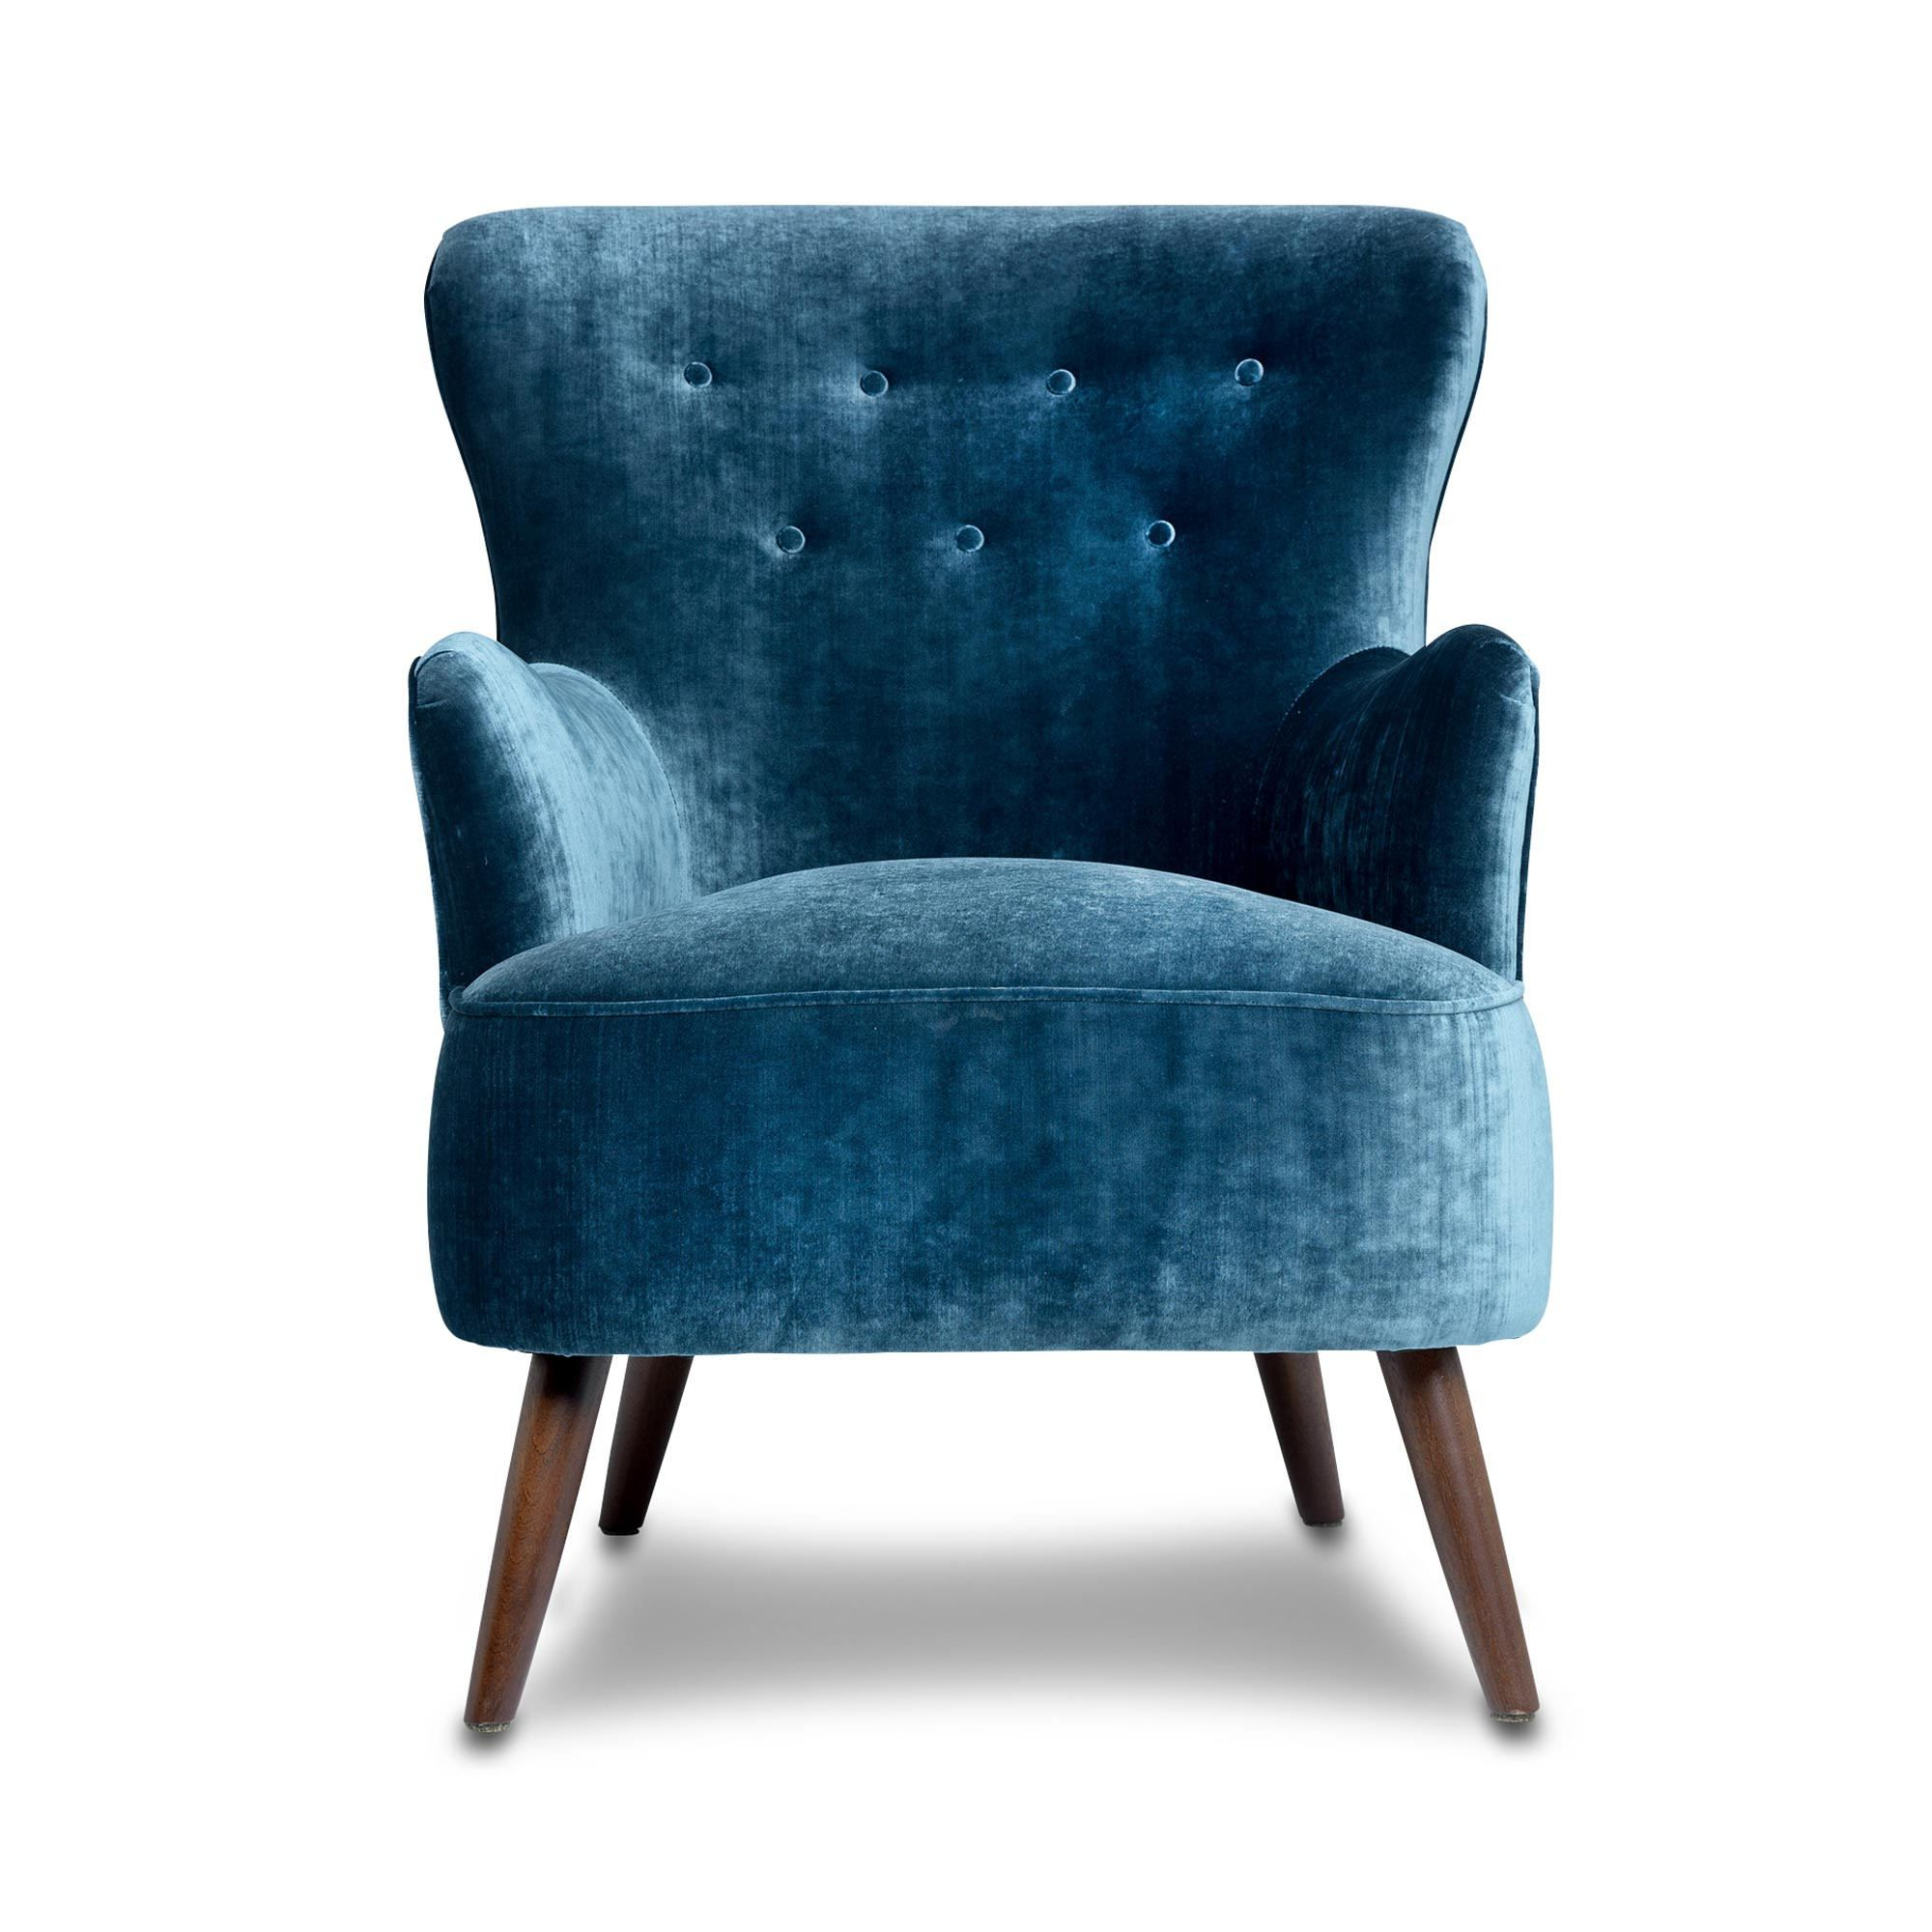 Chesterfield Sessel Accent Stuhl Getuftet Sessel Chesterfield Sessel Teal Blue Accent